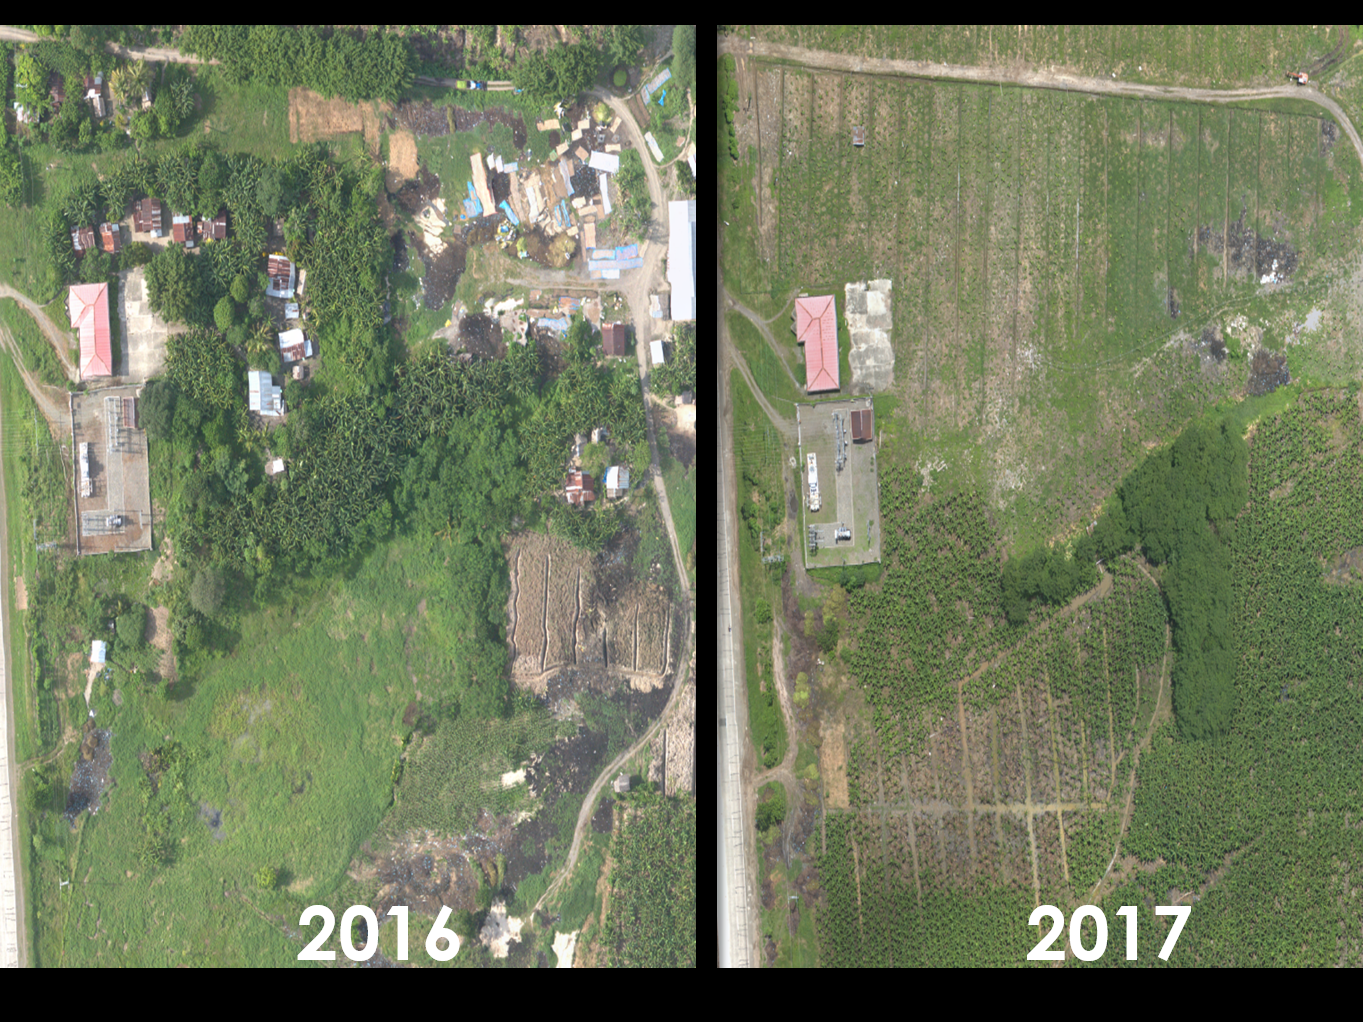 FOREST ENCROACHMENT - CHANGE OVER TIME